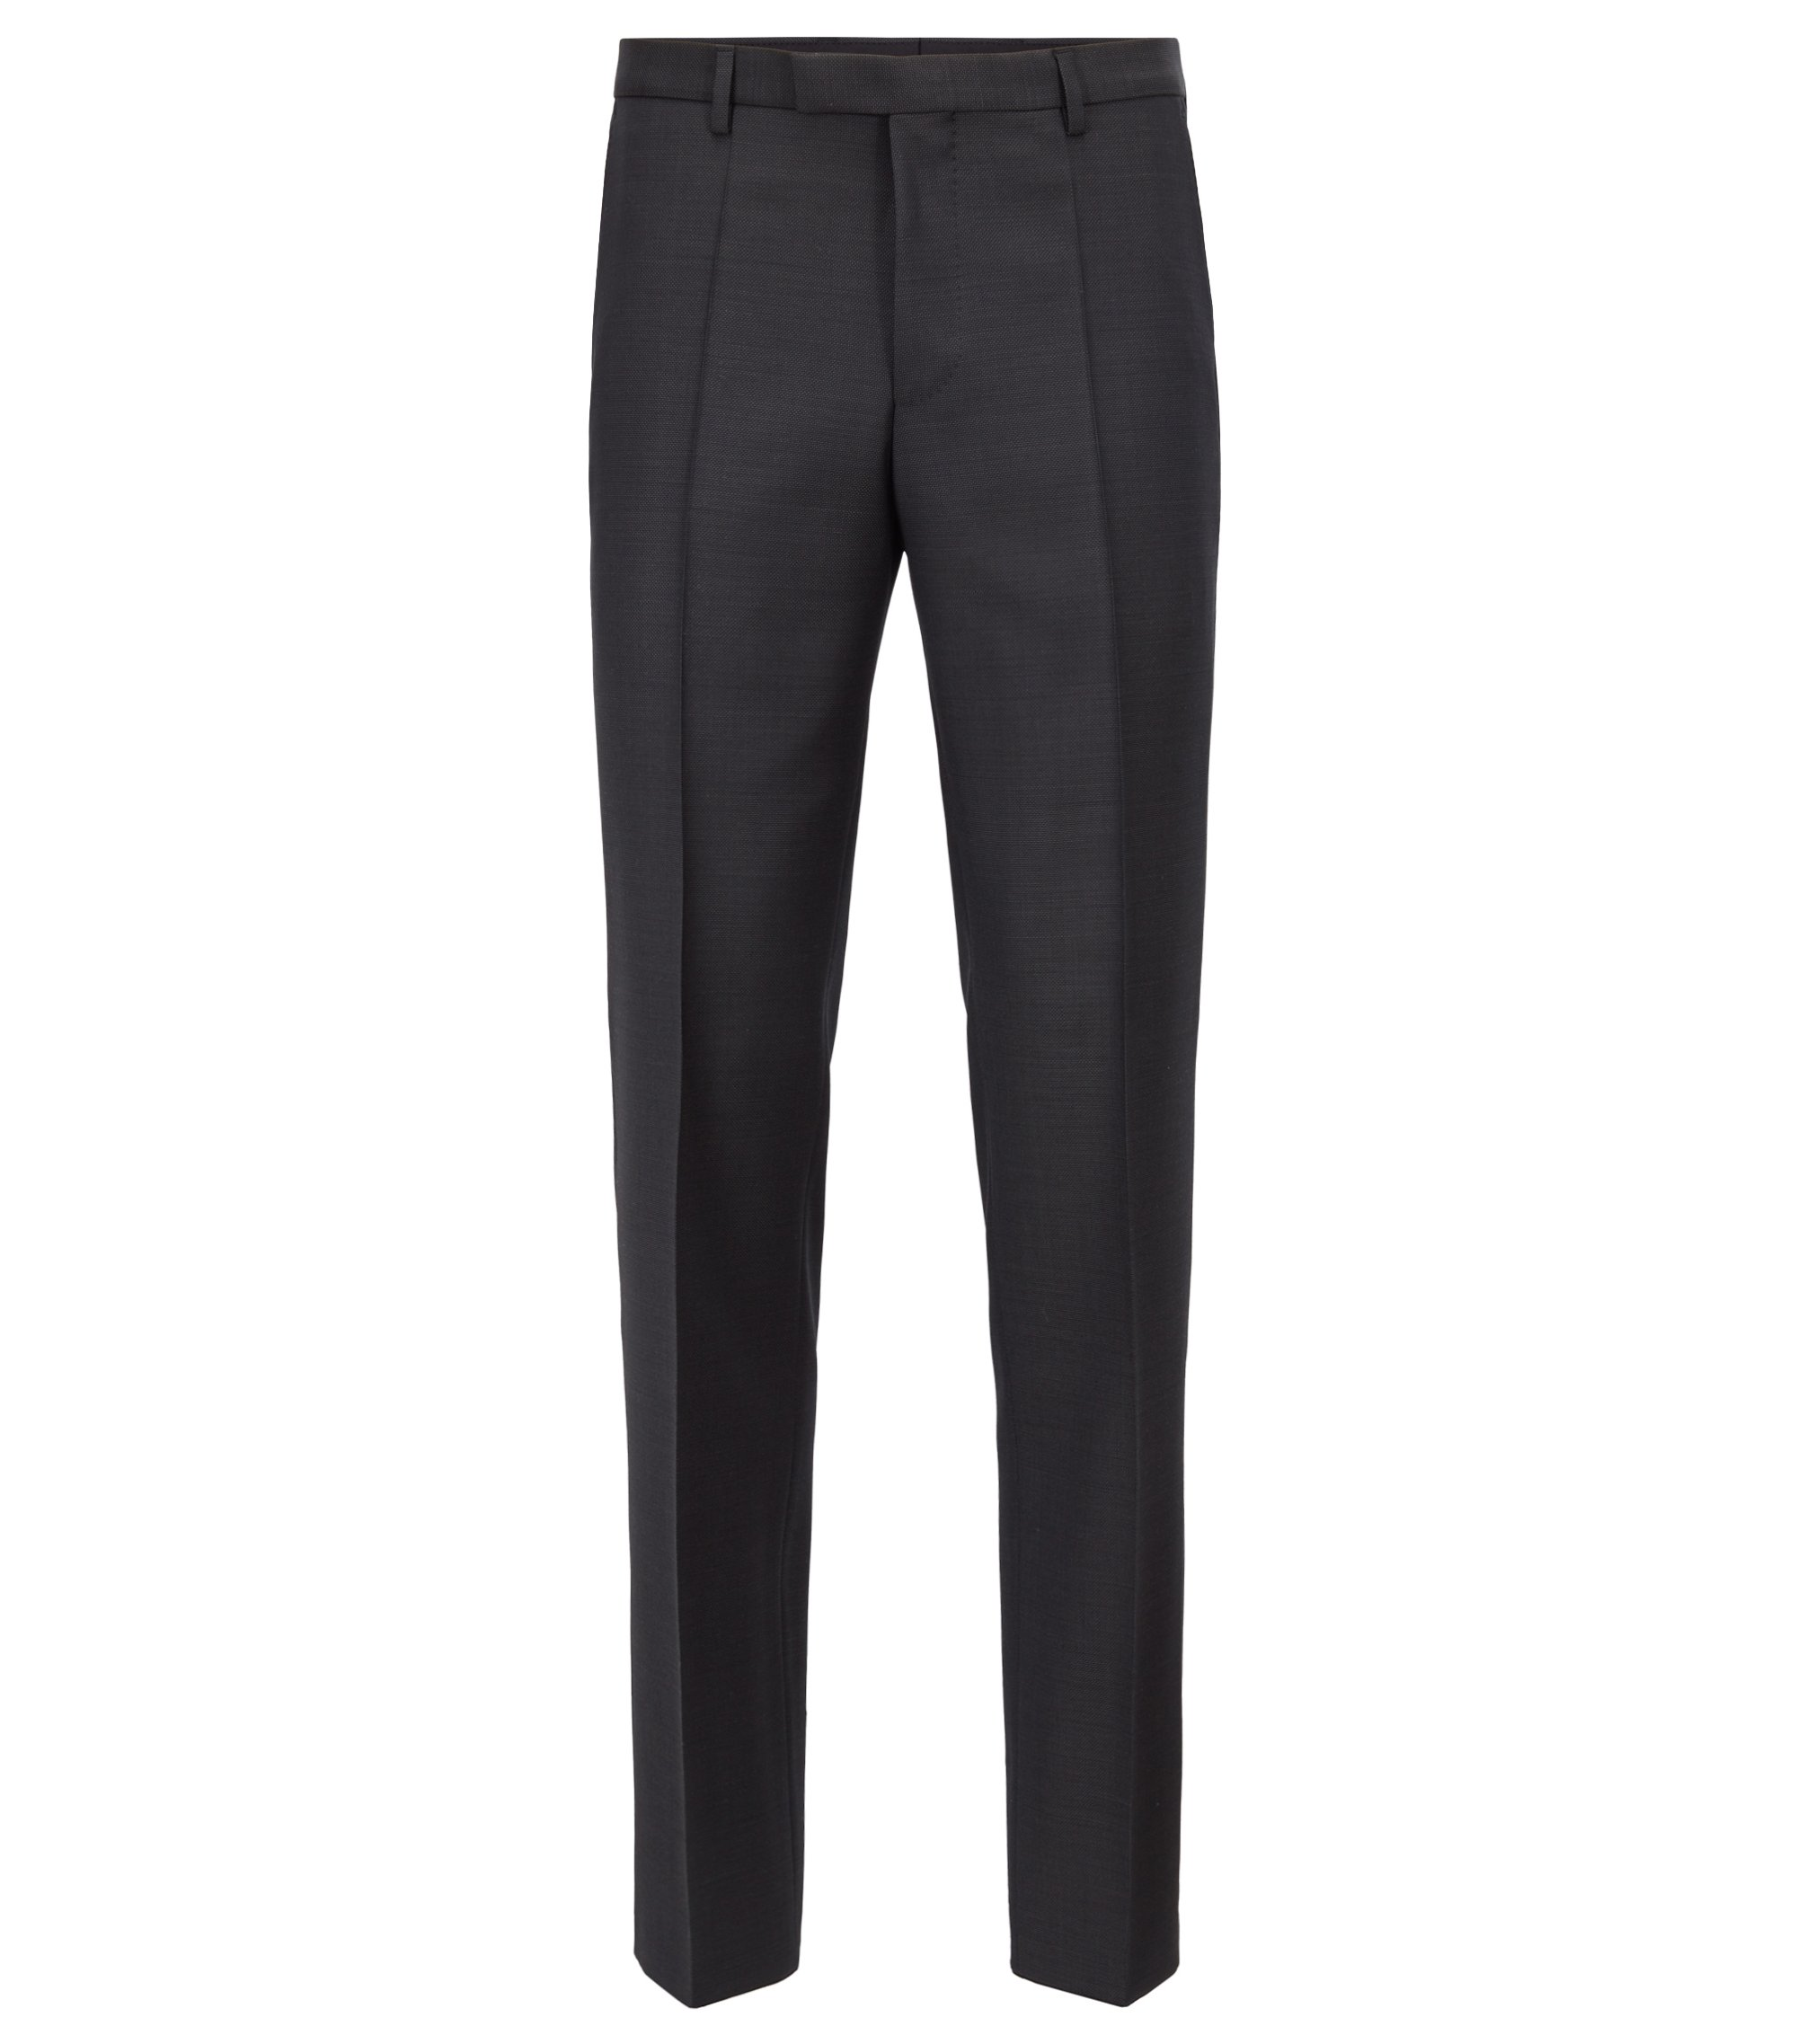 Pantalon Regular Fit en laine vierge unie, Anthracite